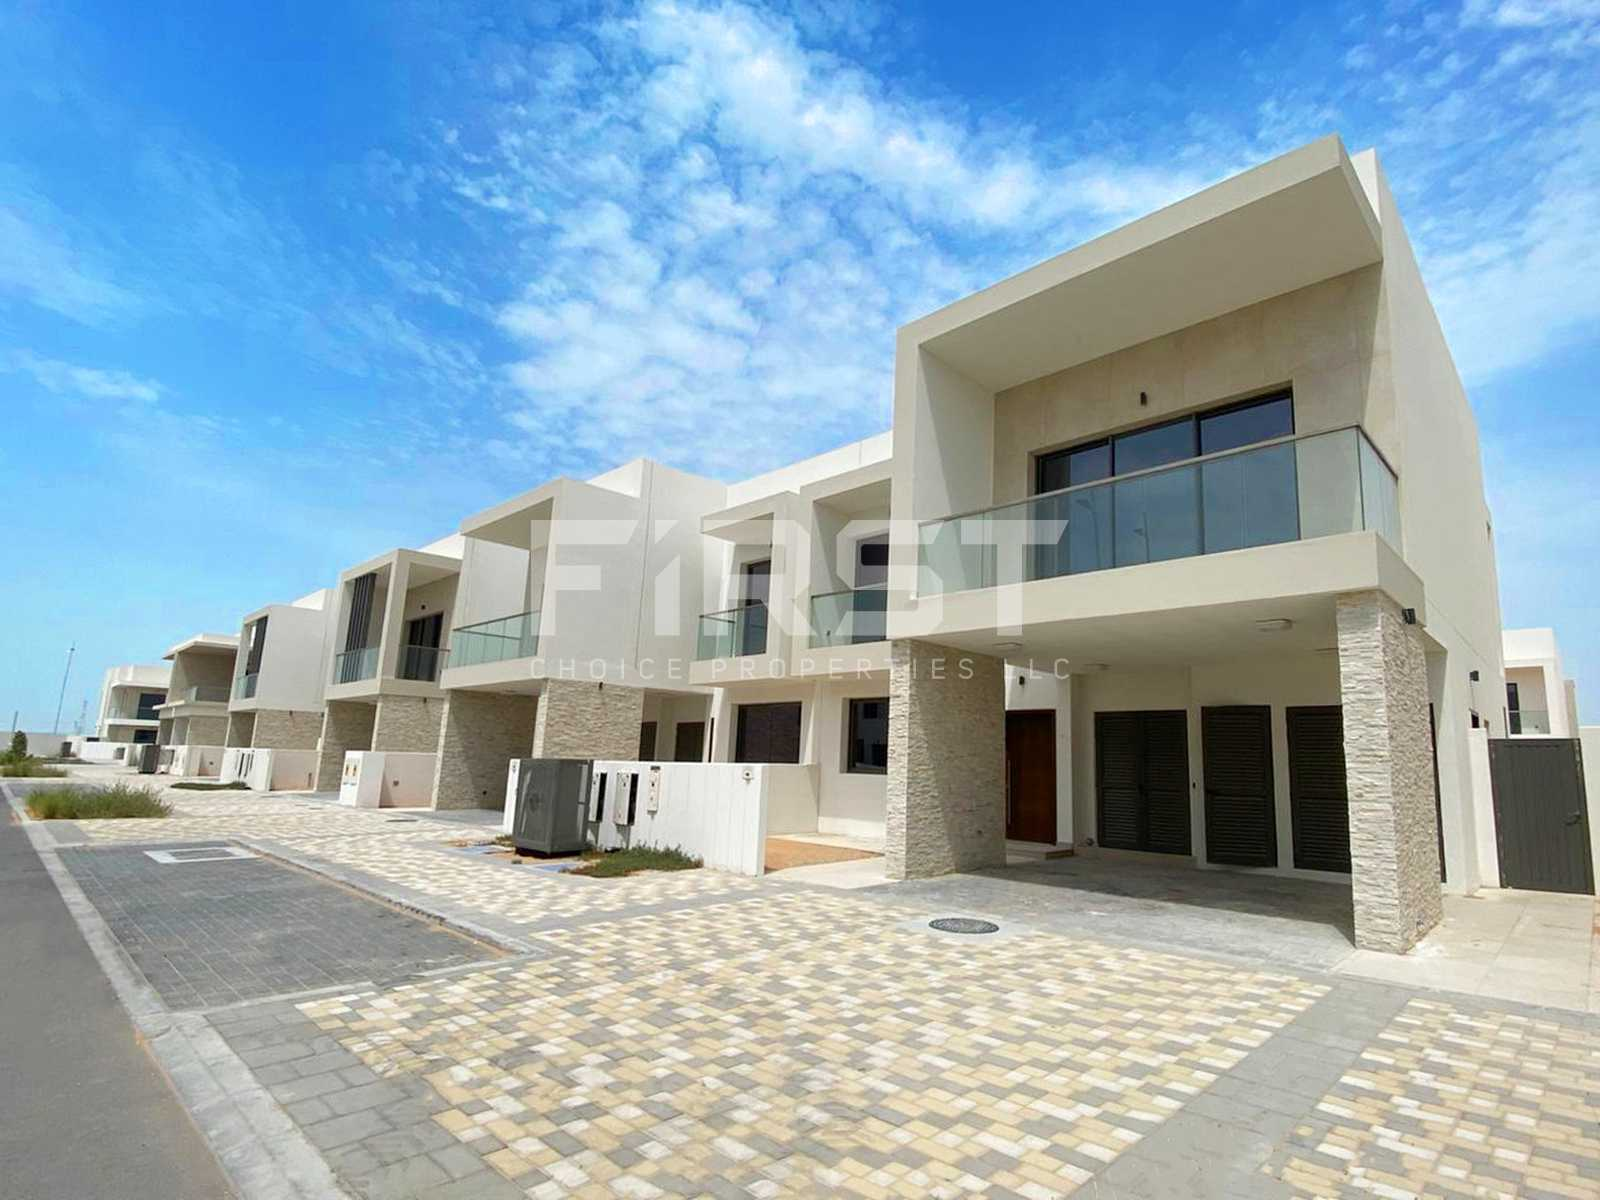 External Photo of 3 Bedroom Duplex Type Y in Yas Acres Yas Island Abu Dhabi UAE (2).jpg